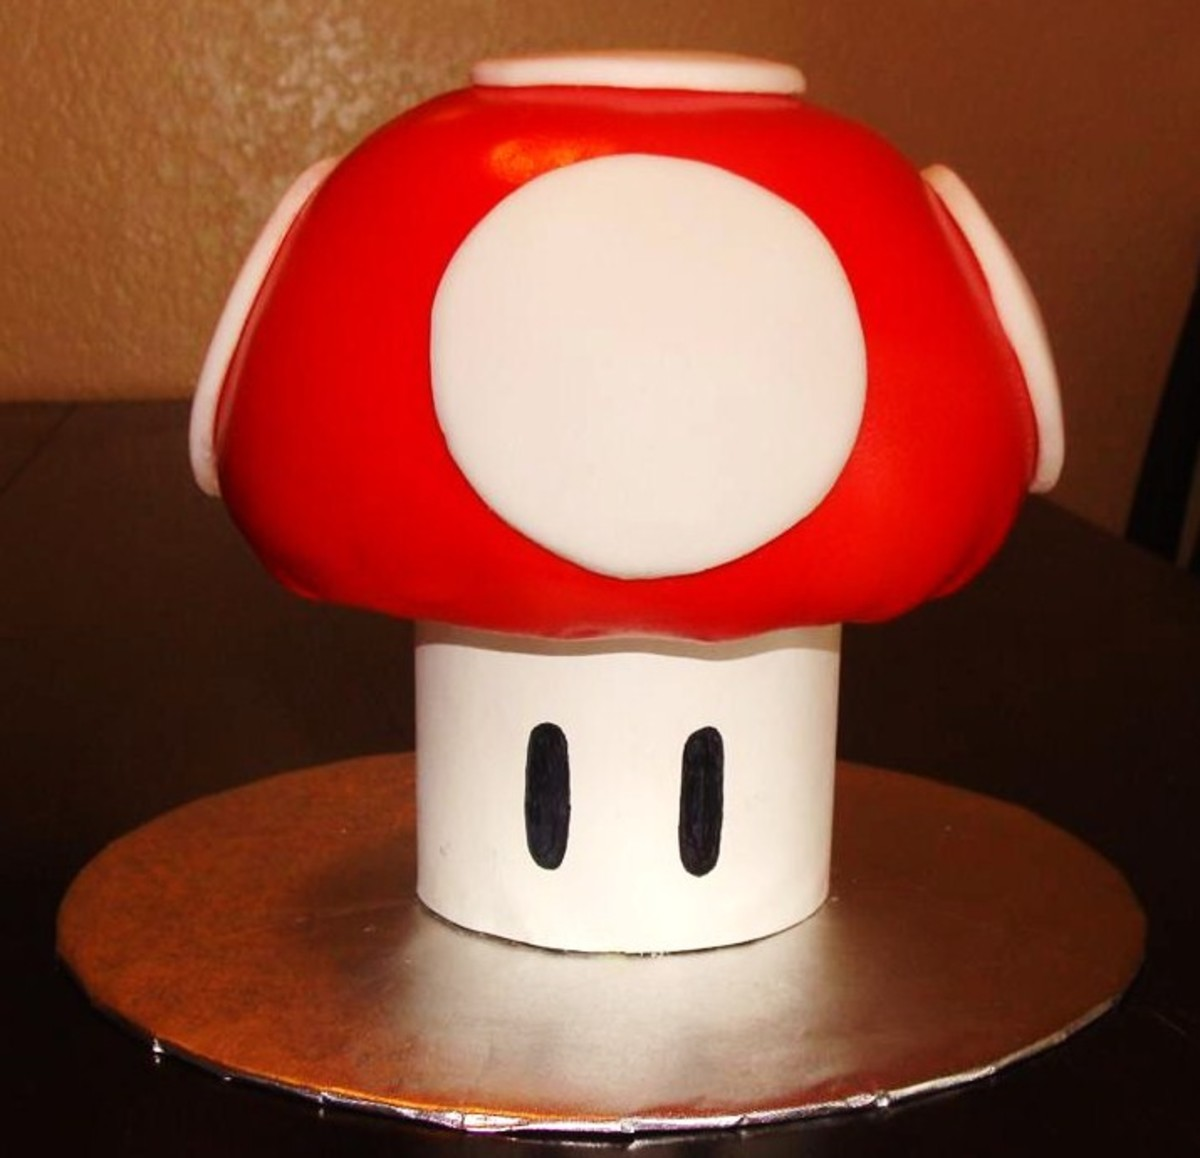 This Super Mario Mushroom Cake was baked using a Pampered Chef Batter Bowl.